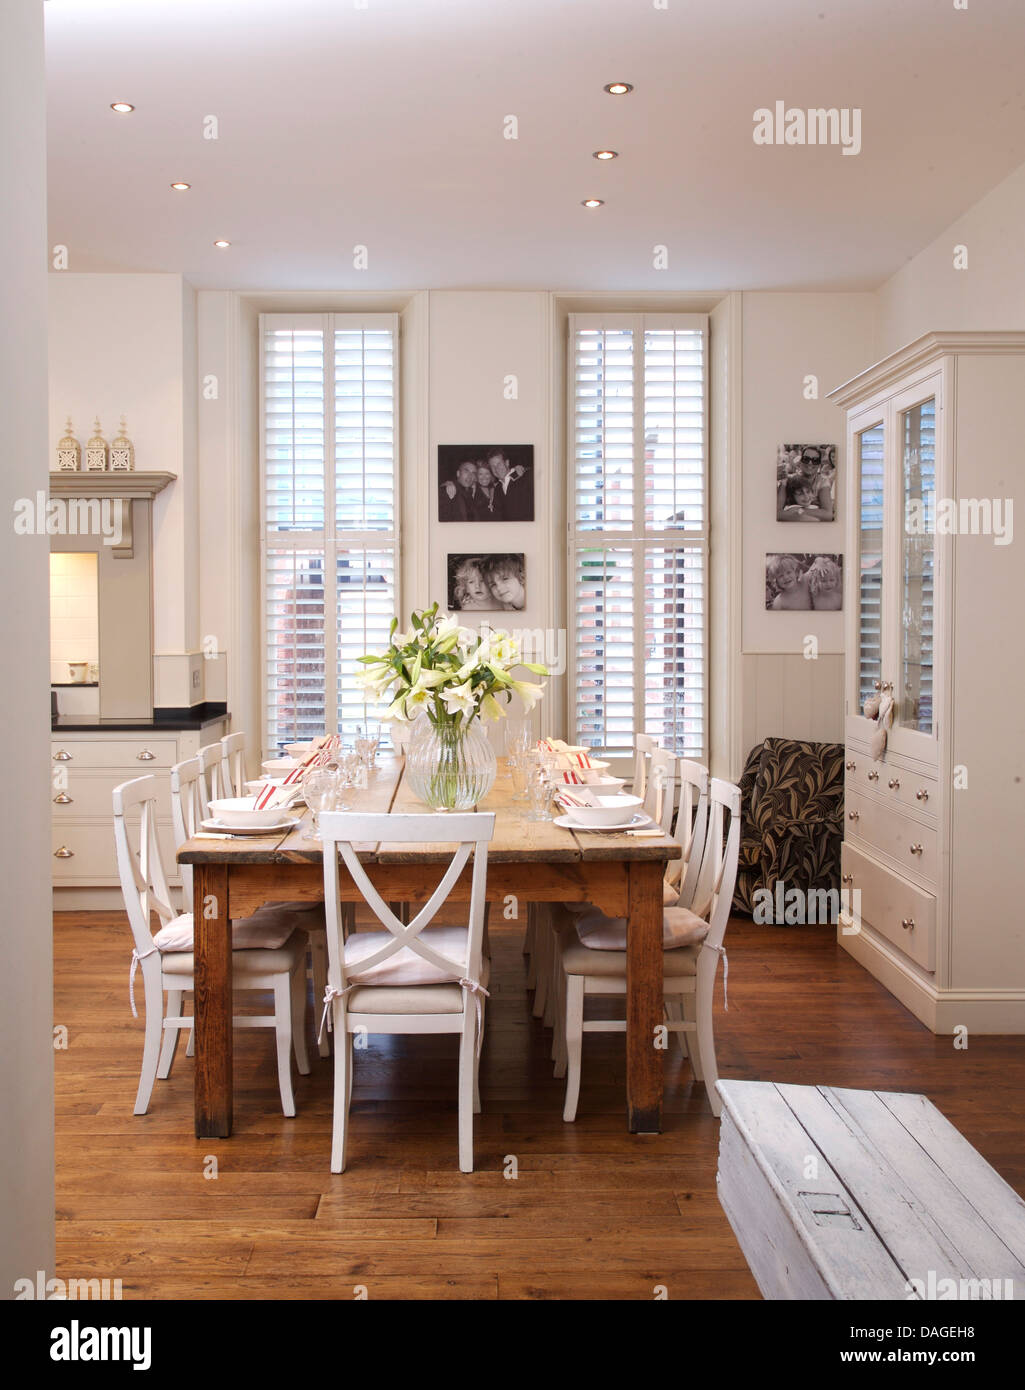 White Chairs At Simple Wood Table In Modern White Kitchen Dining Room With  Wooden Flooring And White Plantation Shutters